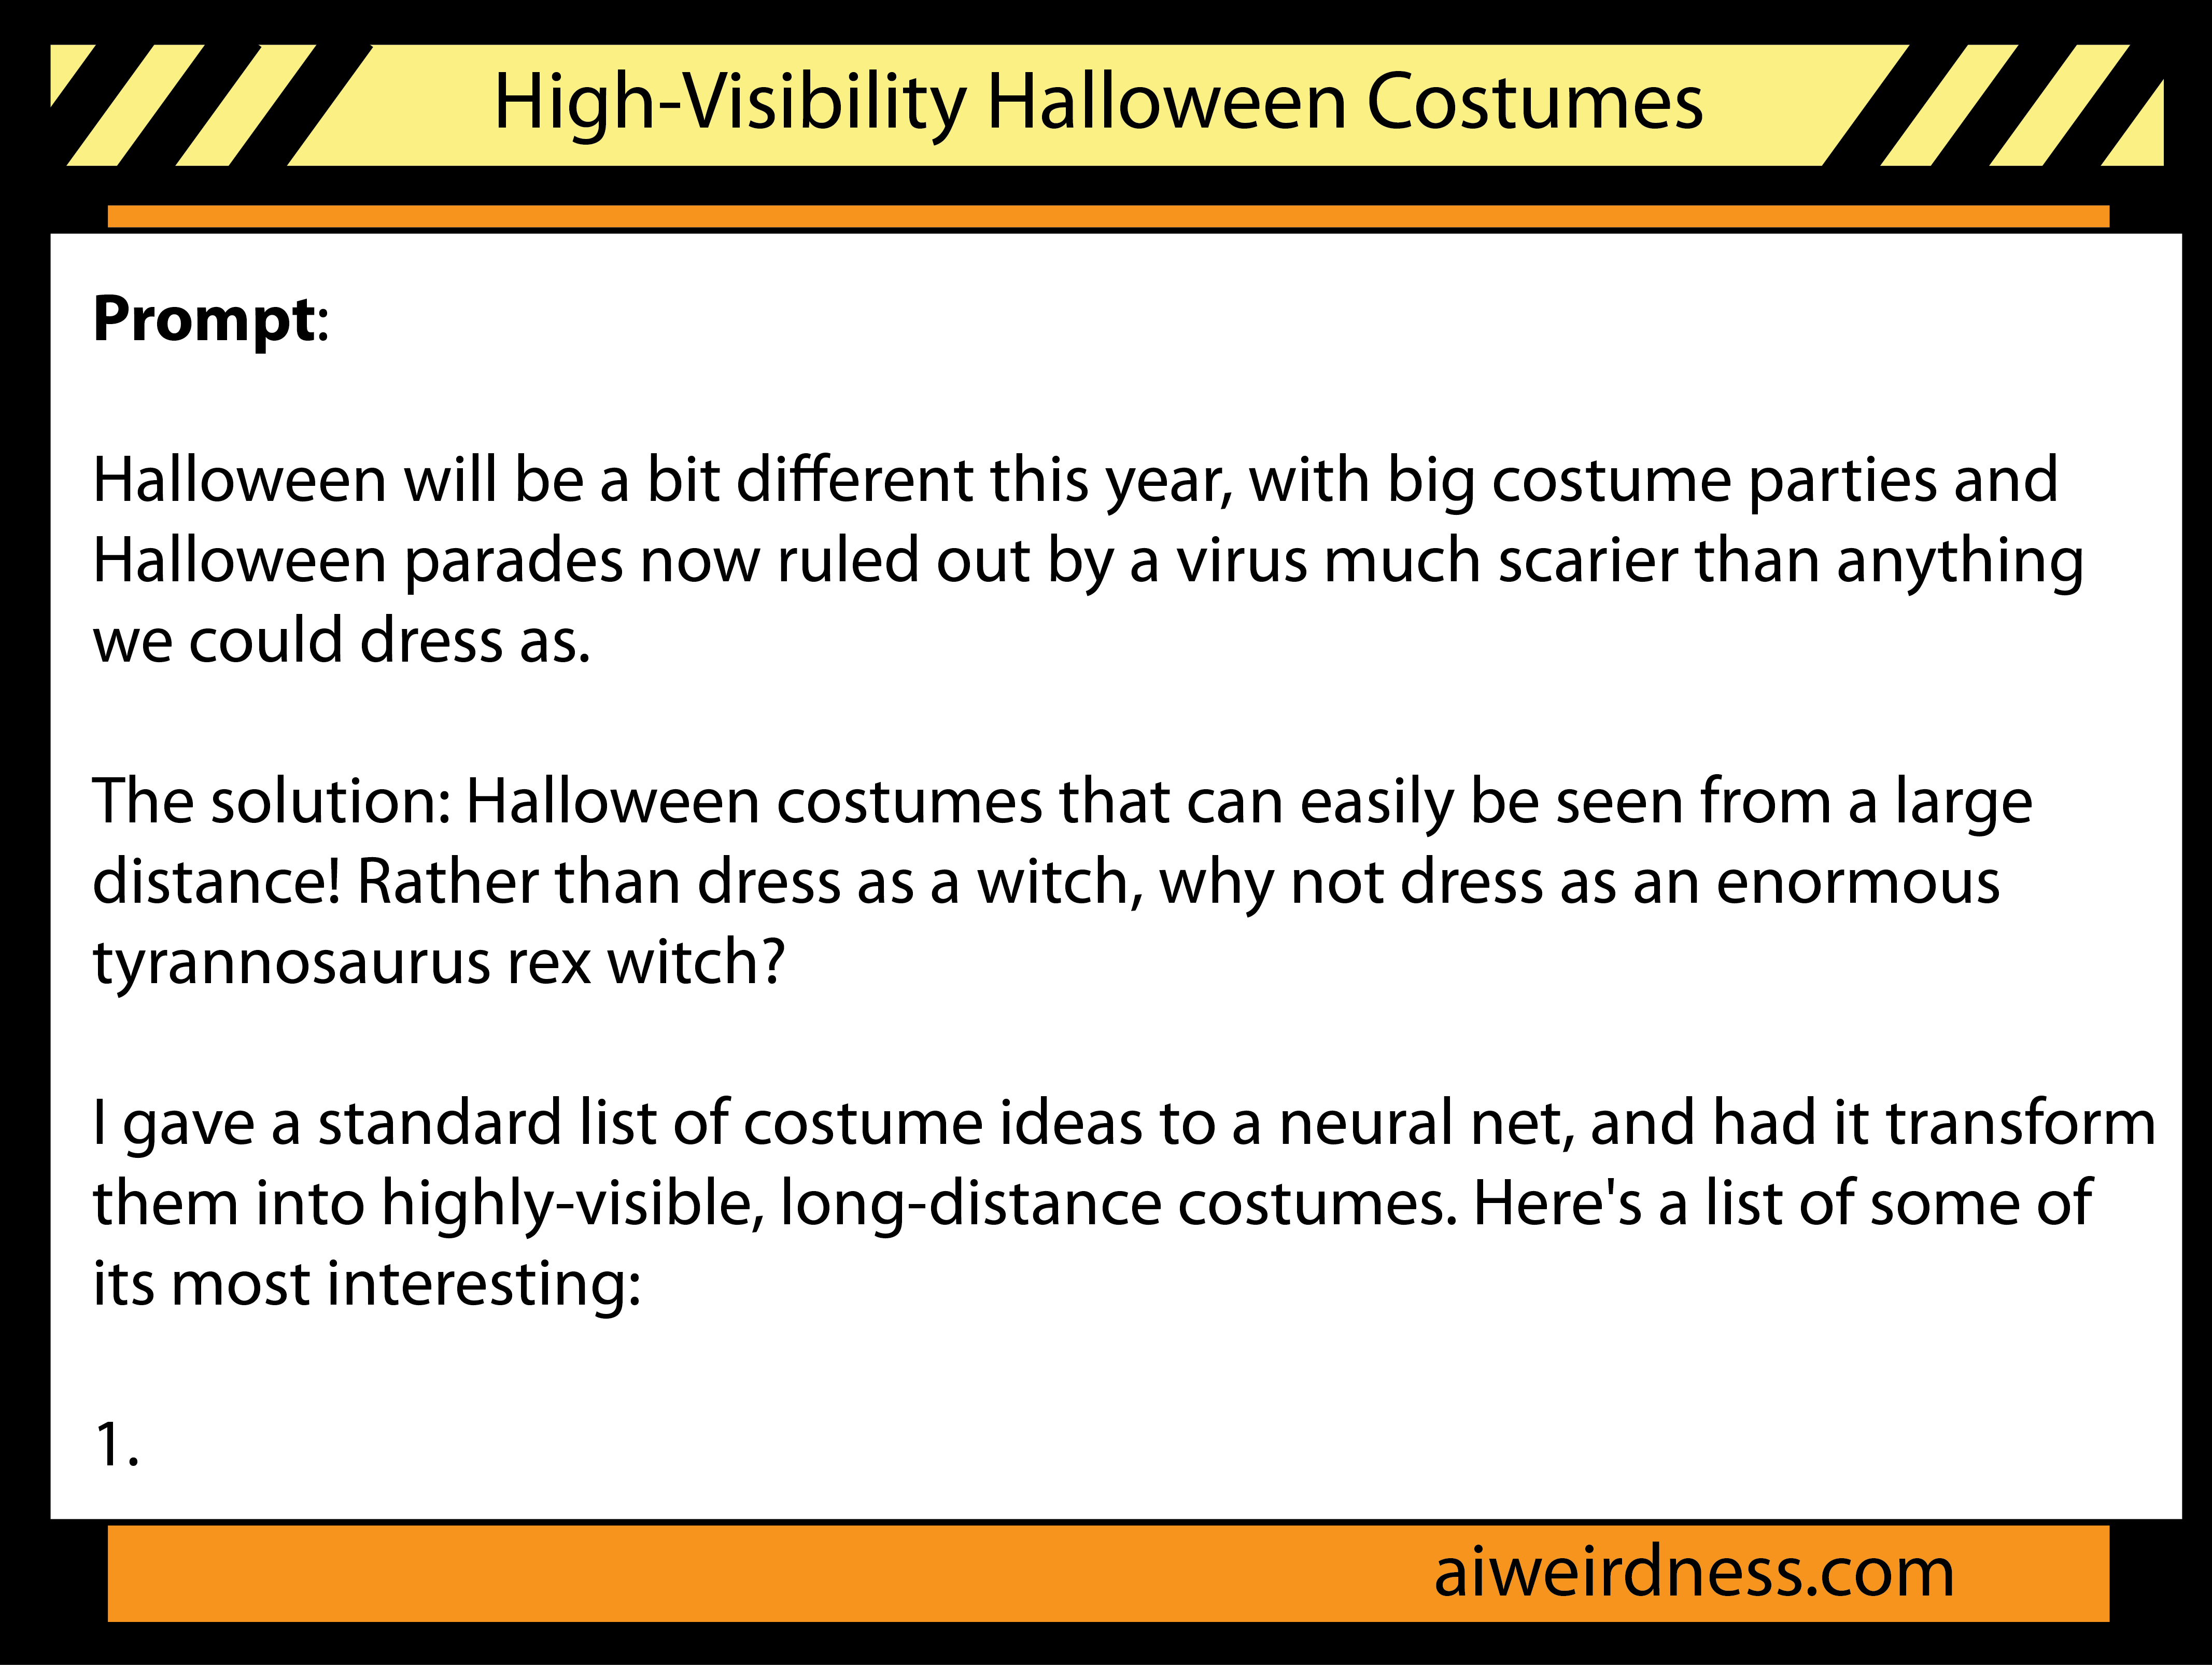 Prompt:  Halloween will be a bit different this year, with big costume parties and Halloween parades now ruled out by a virus much scarier than anything we could dress as.  The solution: Halloween costumes that can easily be seen from a large distance! Rather than dress as a witch, why not dress as an enormous tyrannosaurus rex witch?  I gave a standard list of costume ideas to a neural net, and had it transform them into highly-visible, long-distance costumes. Here's a list of some of its most interesting:  1.